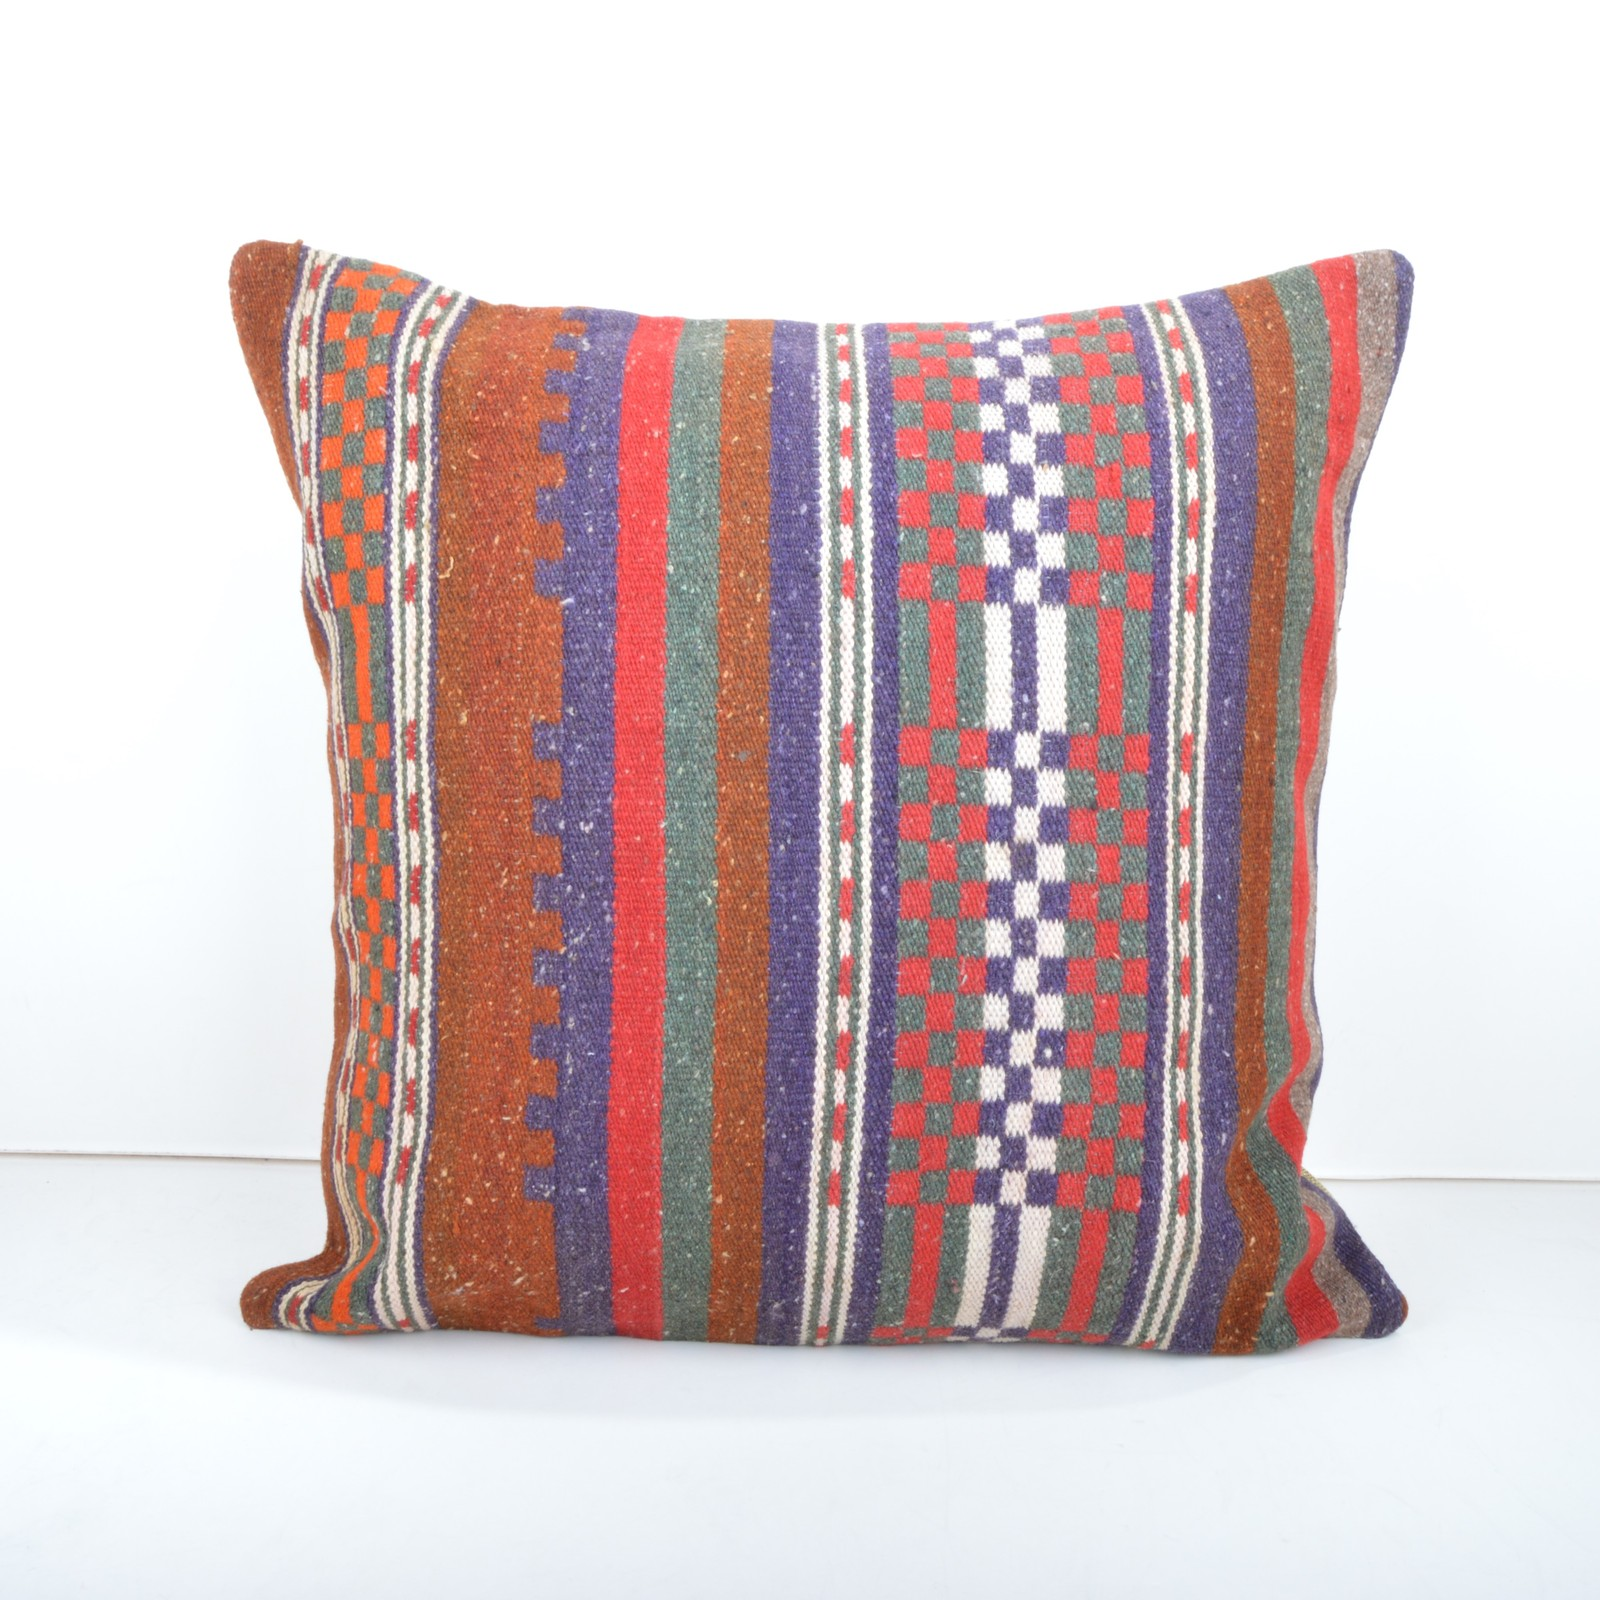 Primary image for  VINTAGE TURKISH HANDWOVEN STRIPED KILIM RUG DECORATIVE PILLOW COVER 20x20''